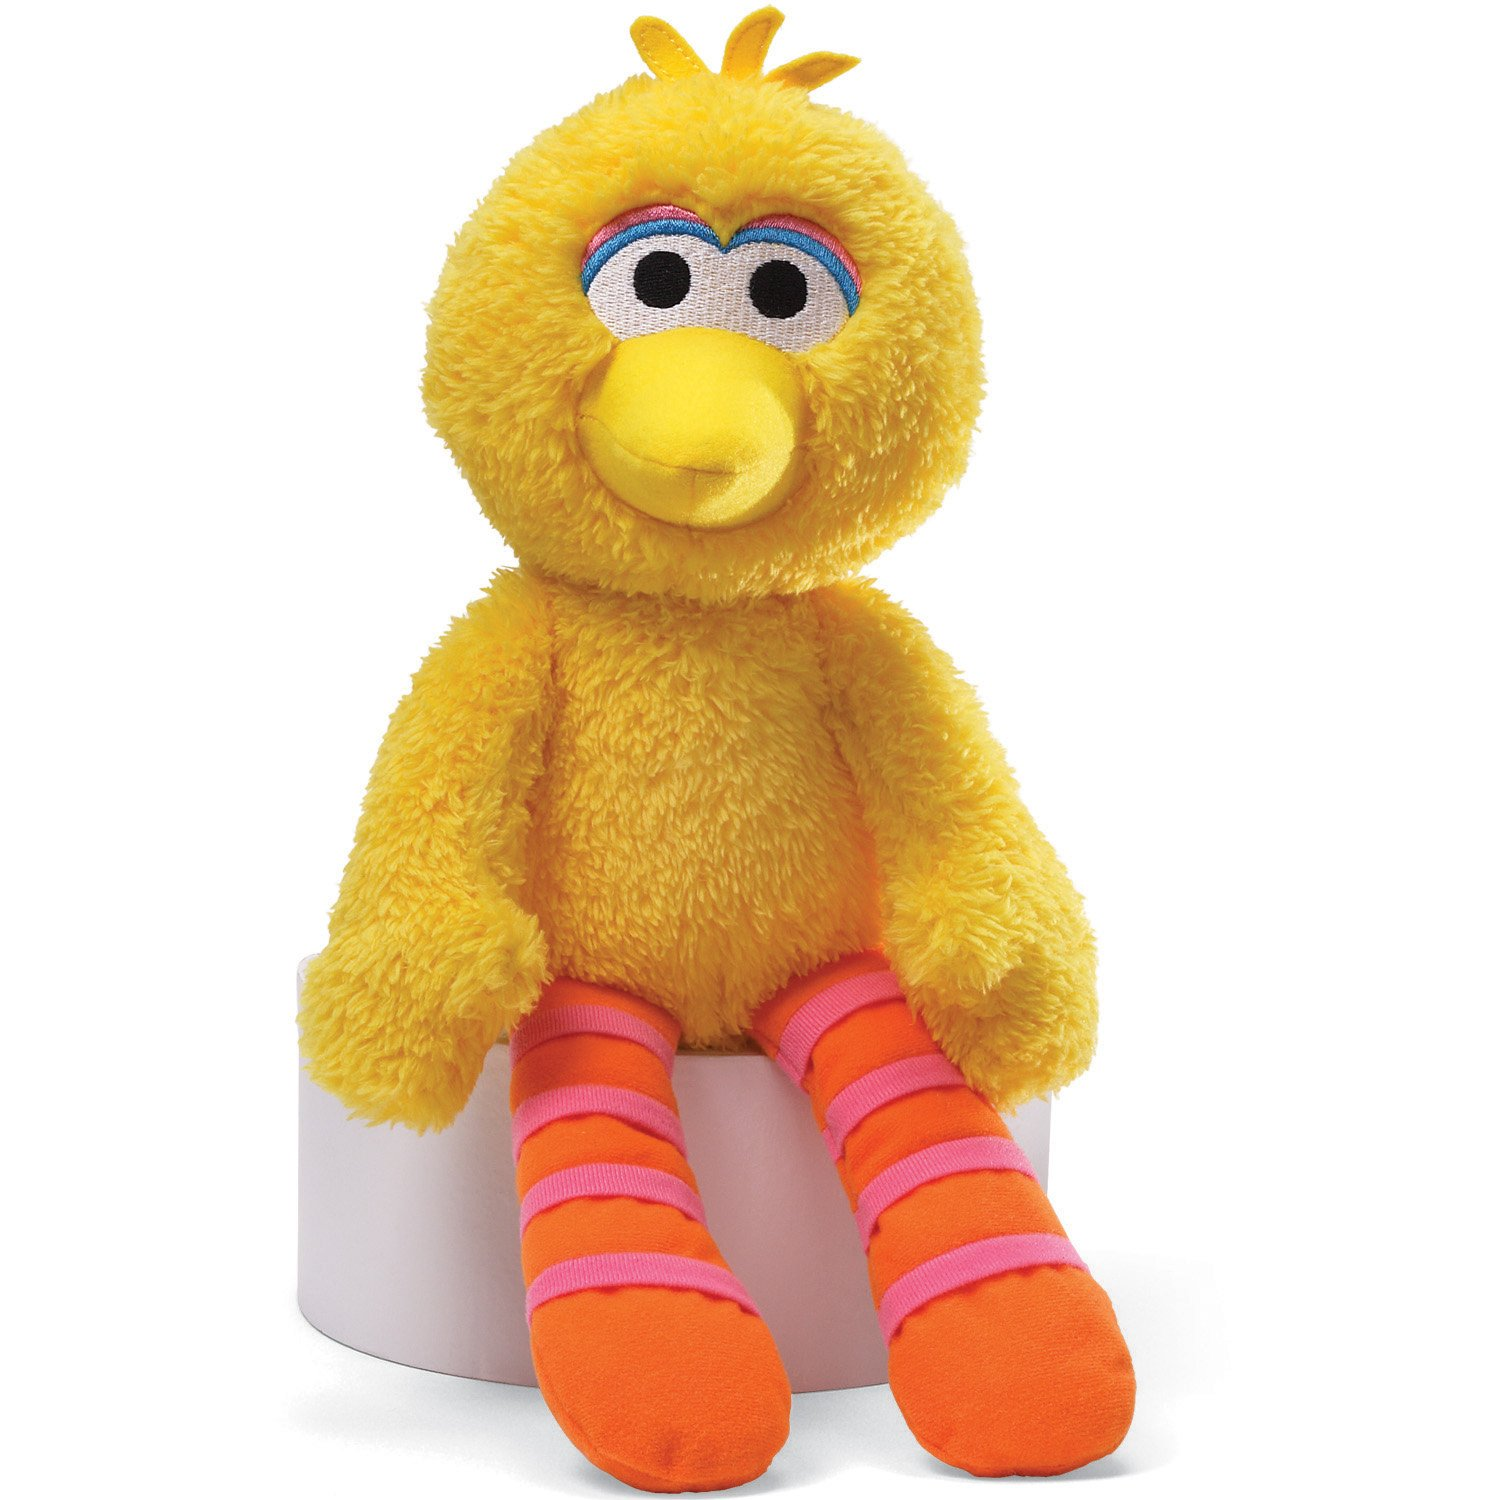 Gund Sesame Street Big Bird Take Along Stuffed Animal